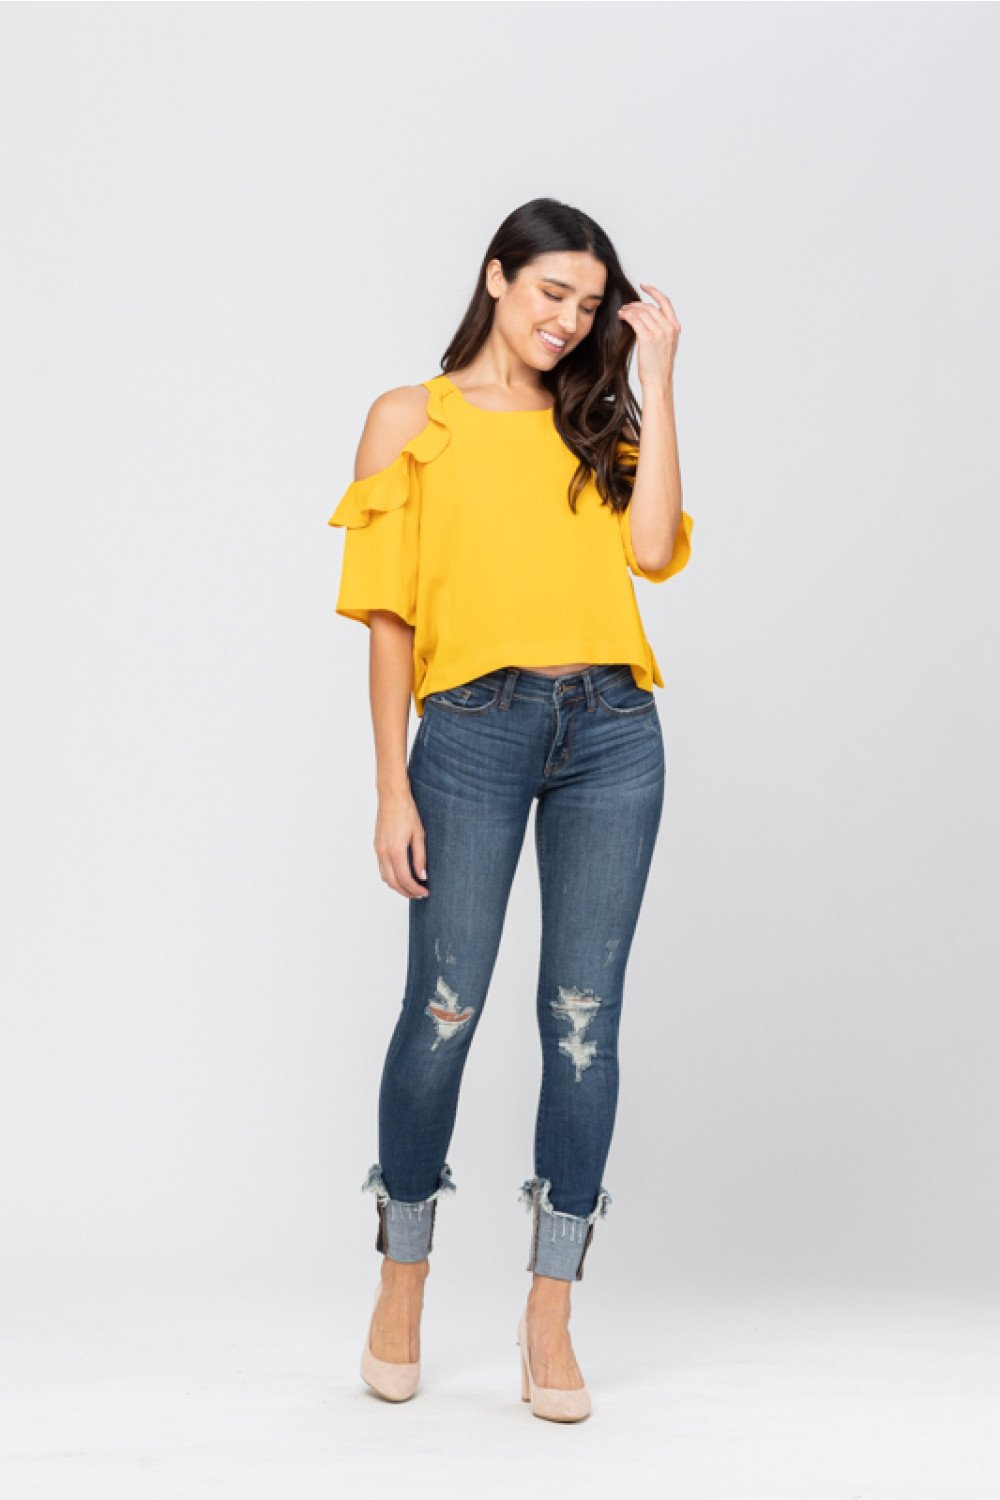 Cuffed in Style Destroyed Judy Blue Jeans  These dark washed, cuffed jeans offer the perfect look for the Fall weather! Rock these comfy Judy Blue jeans with a classic raglan tee or dress them up with a stunning blouse or tunic for the perfect style wherever your day may take you.